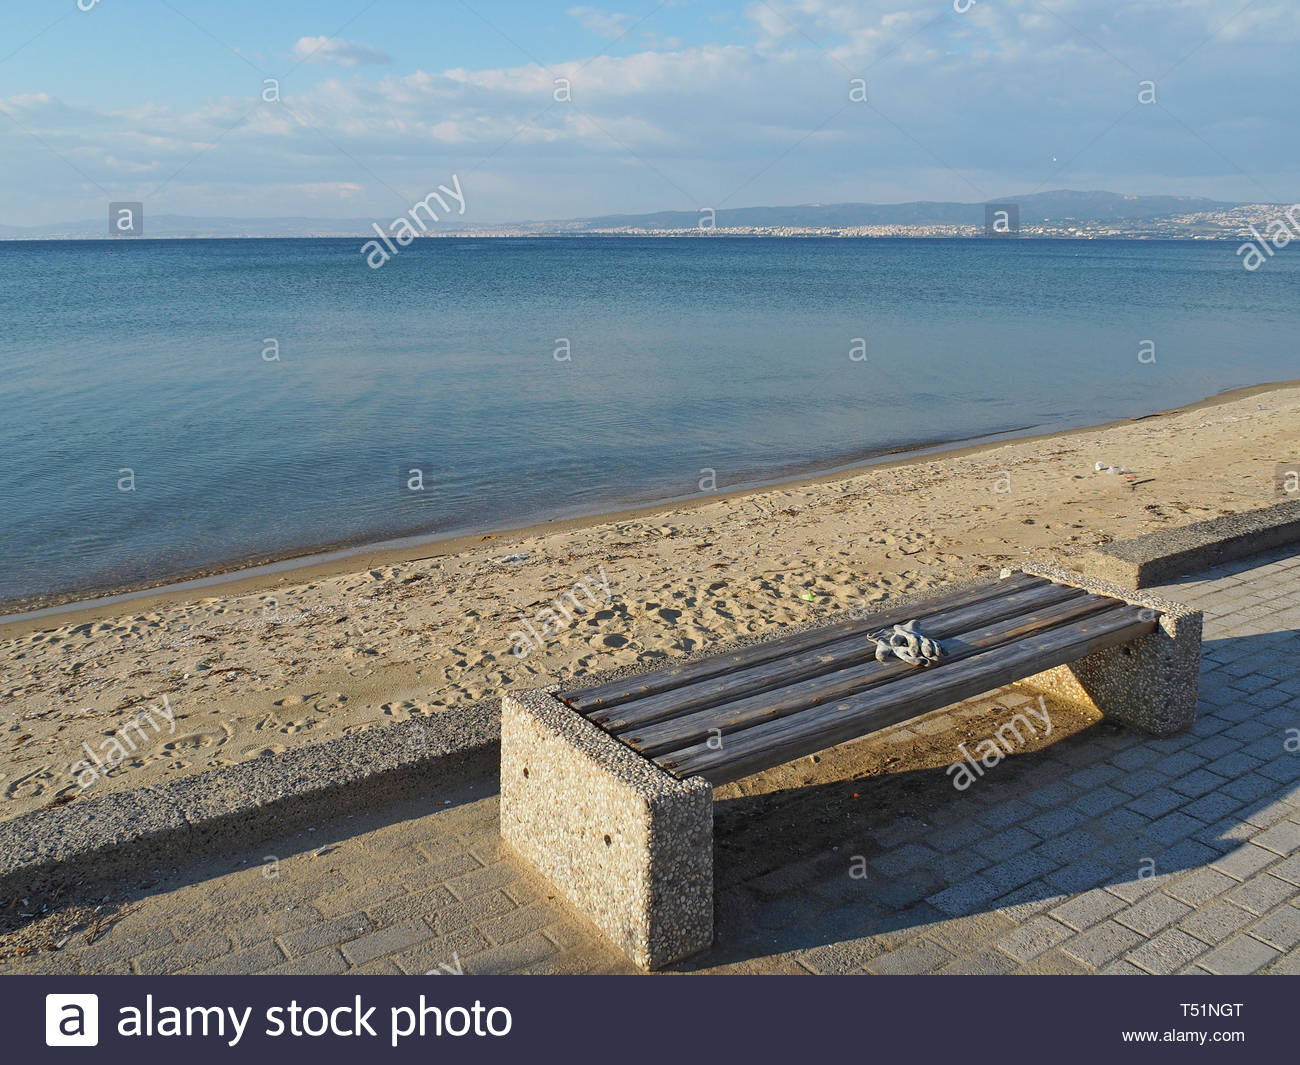 a pair of protective gloves on a bench - Stock Image